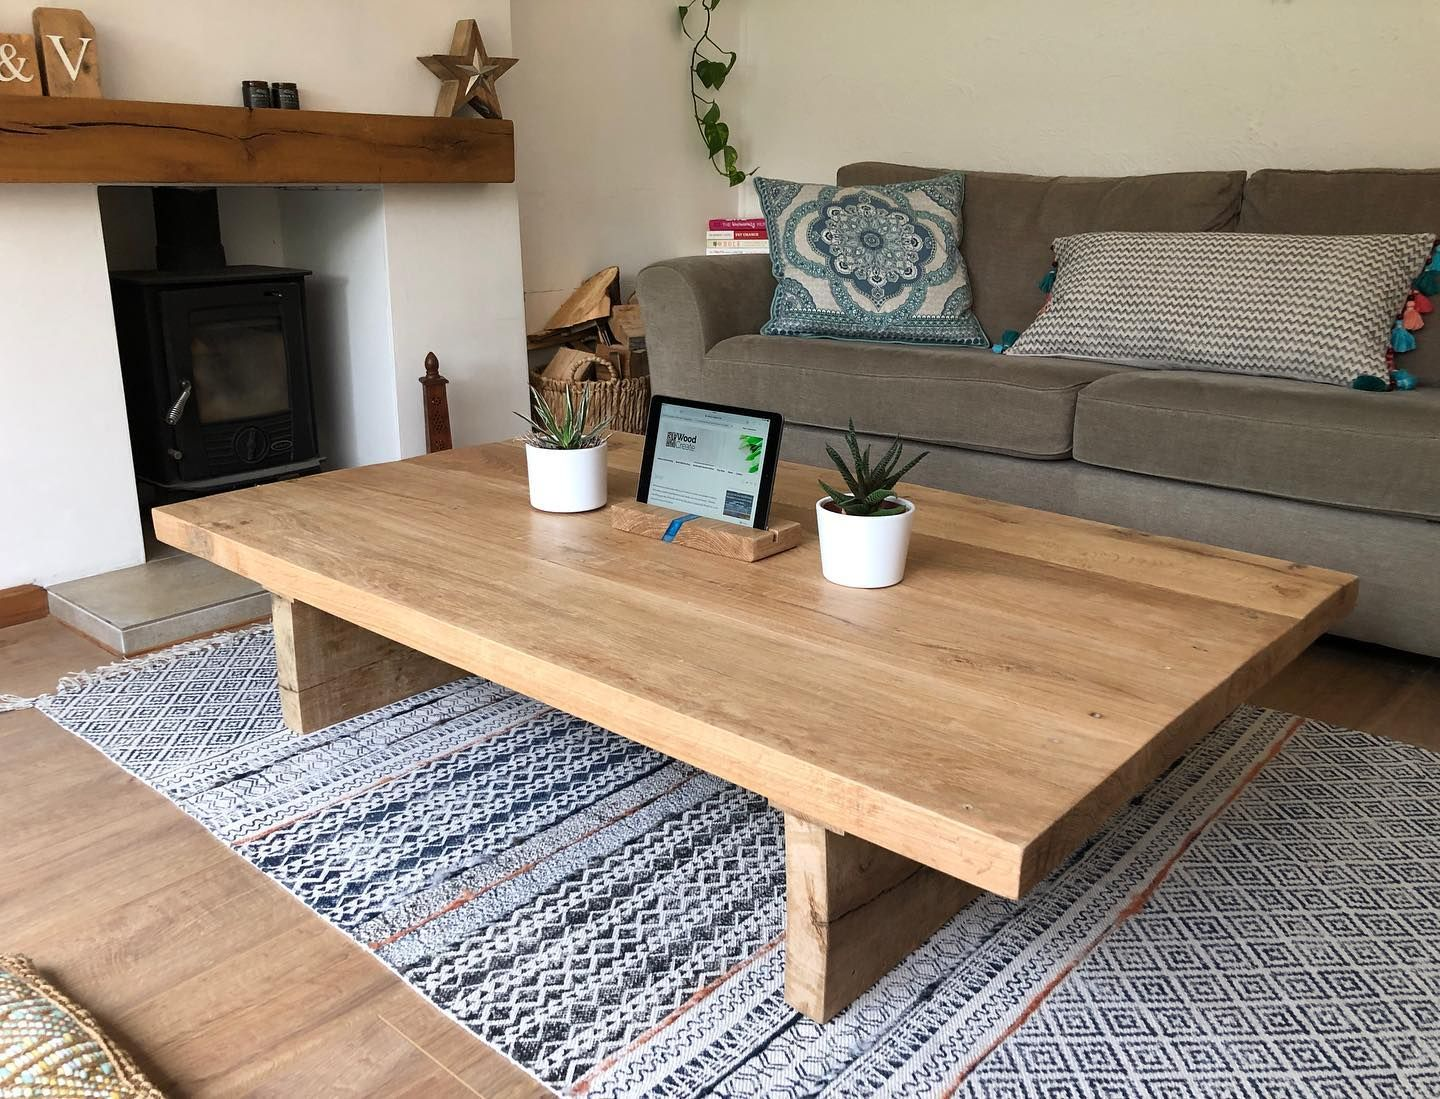 Another Amazing Solid Chunky Oak Coffee Table From Wood Create This One Was A Living Room Coffee Table Coffee Table Decor Living Room Table Decor Living Room [ 1099 x 1440 Pixel ]